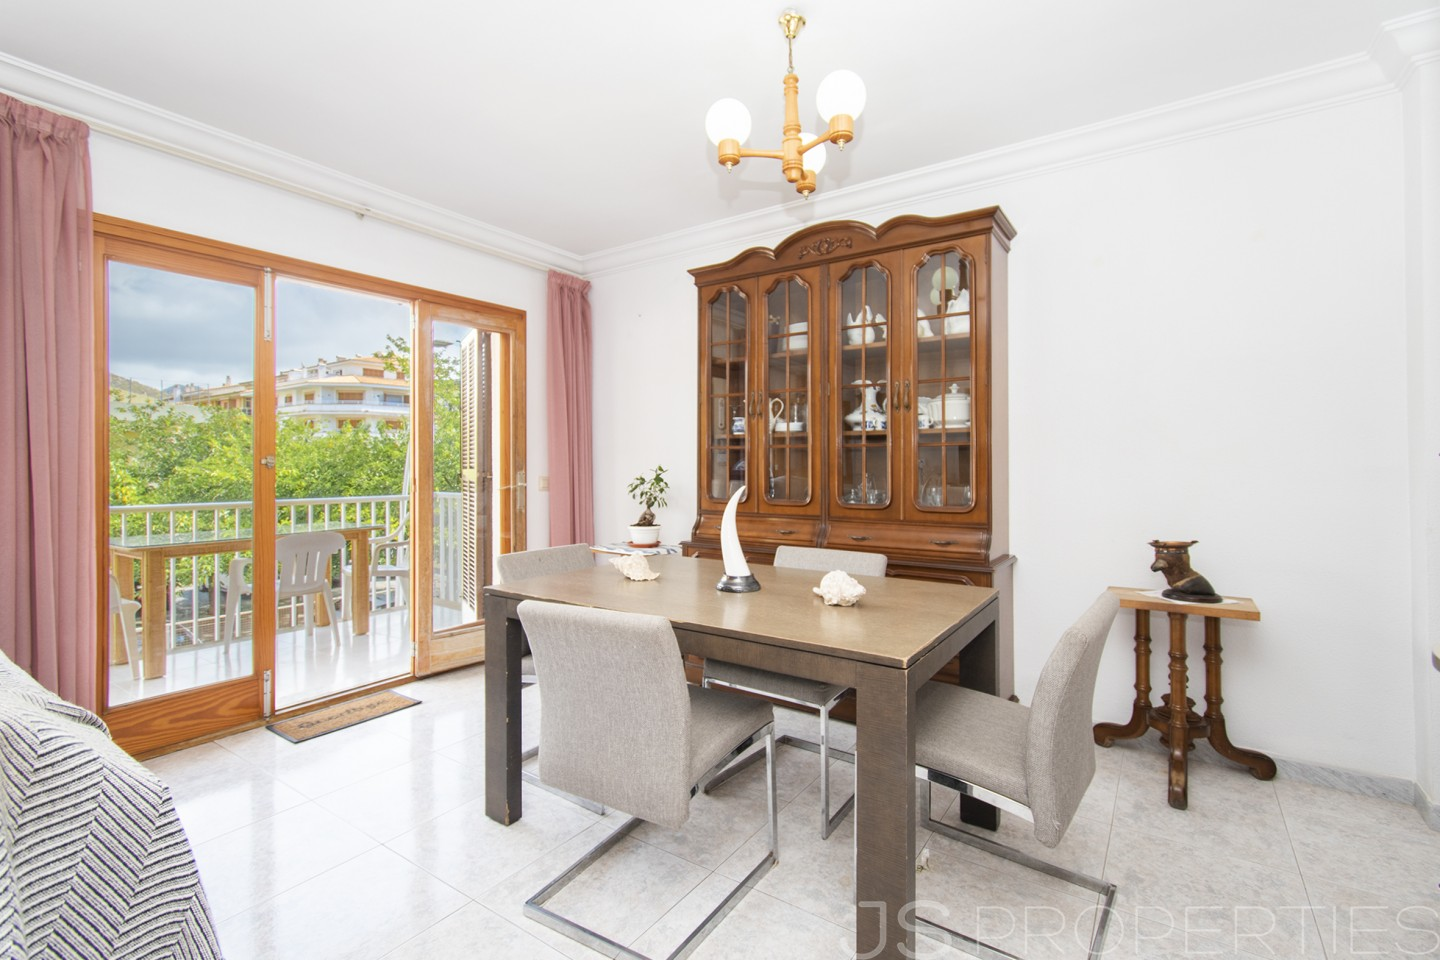 FOUR BEDROOM APARTMENT WITH BALCONY IN PUERTO POLLENSA